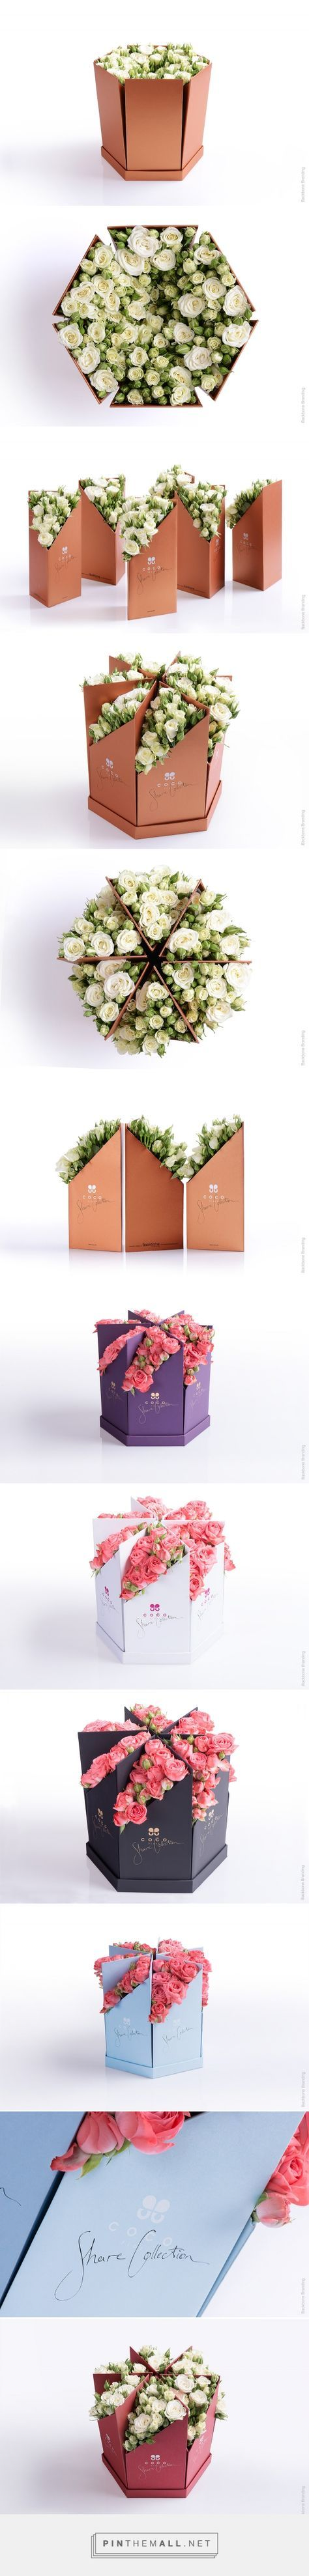 """Calligraphy, graphic design and packaging for Coco Fiori """"Share Collection"""" on Behance by Backbone Branding Yervan, Armenia curated by Packaging Diva PD. A big bouquet of flowers which you can share into parts and present a piece of beauty to the people you love."""